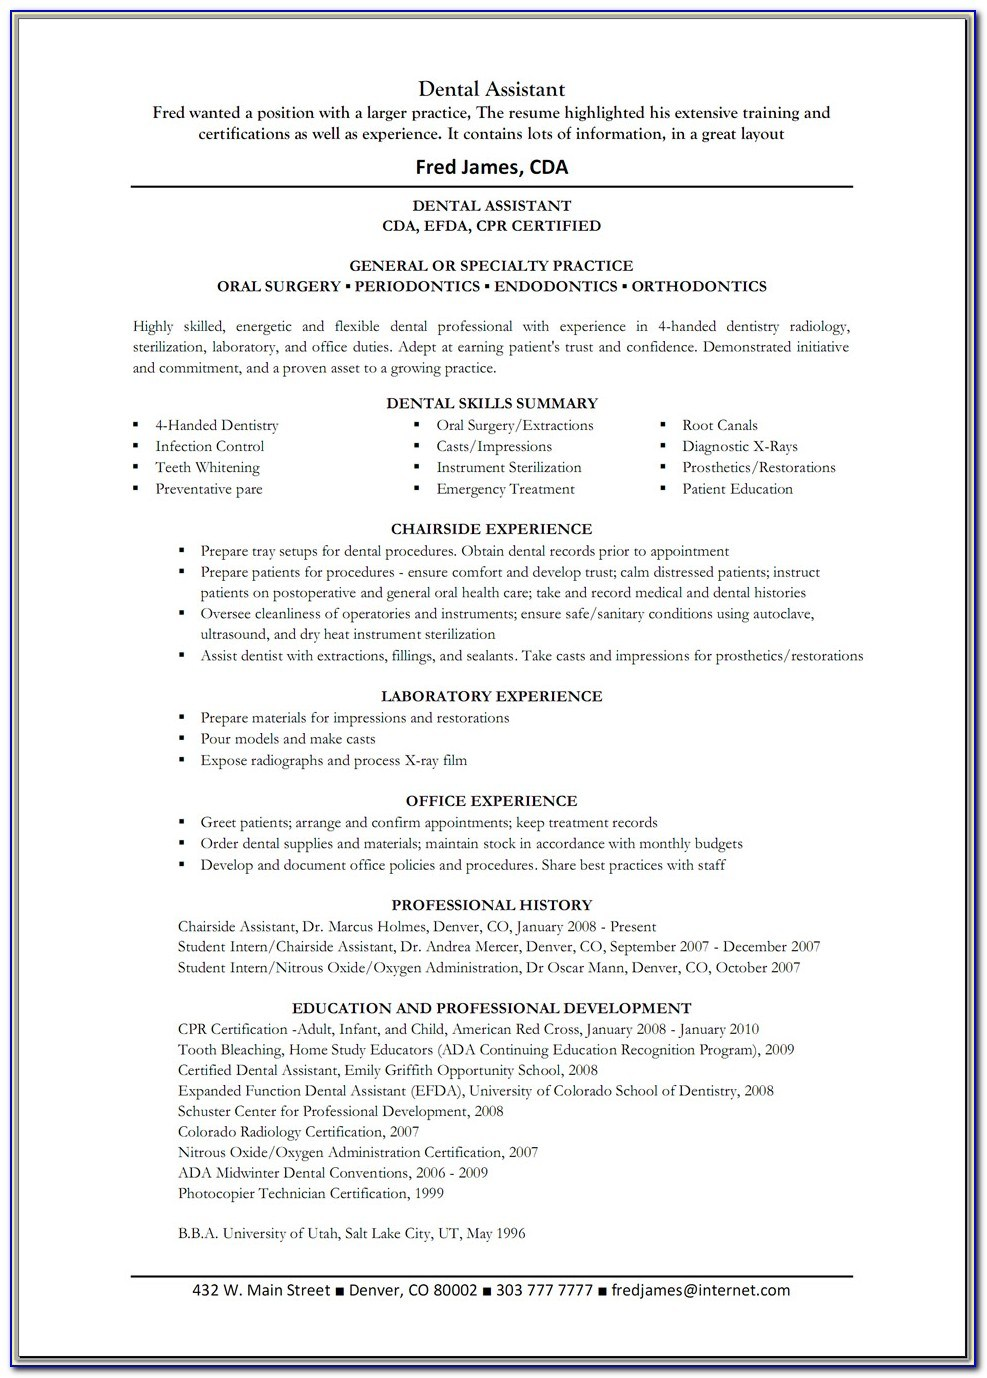 resume sample for dental assistant vincegray2014 surgical templates free manager keyword Resume Surgical Assistant Resume Sample